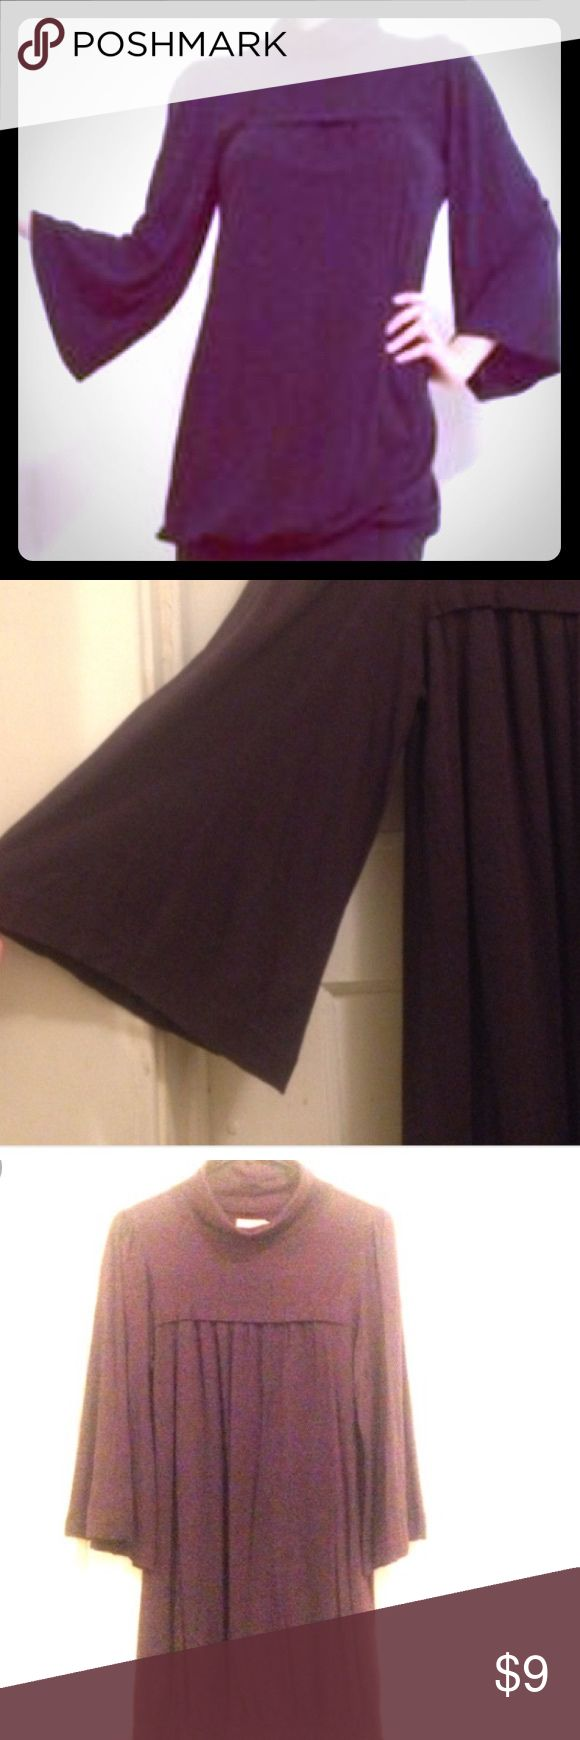 Juicy purple turtleneck tunic Size M. Juicy Couture Turtleneck Tunic w/ wide sleeves in a Gorgeous Deep Shade of Purple. Material is soft like a T-shirt. So comfy and light! Juicy Couture Dresses Mini